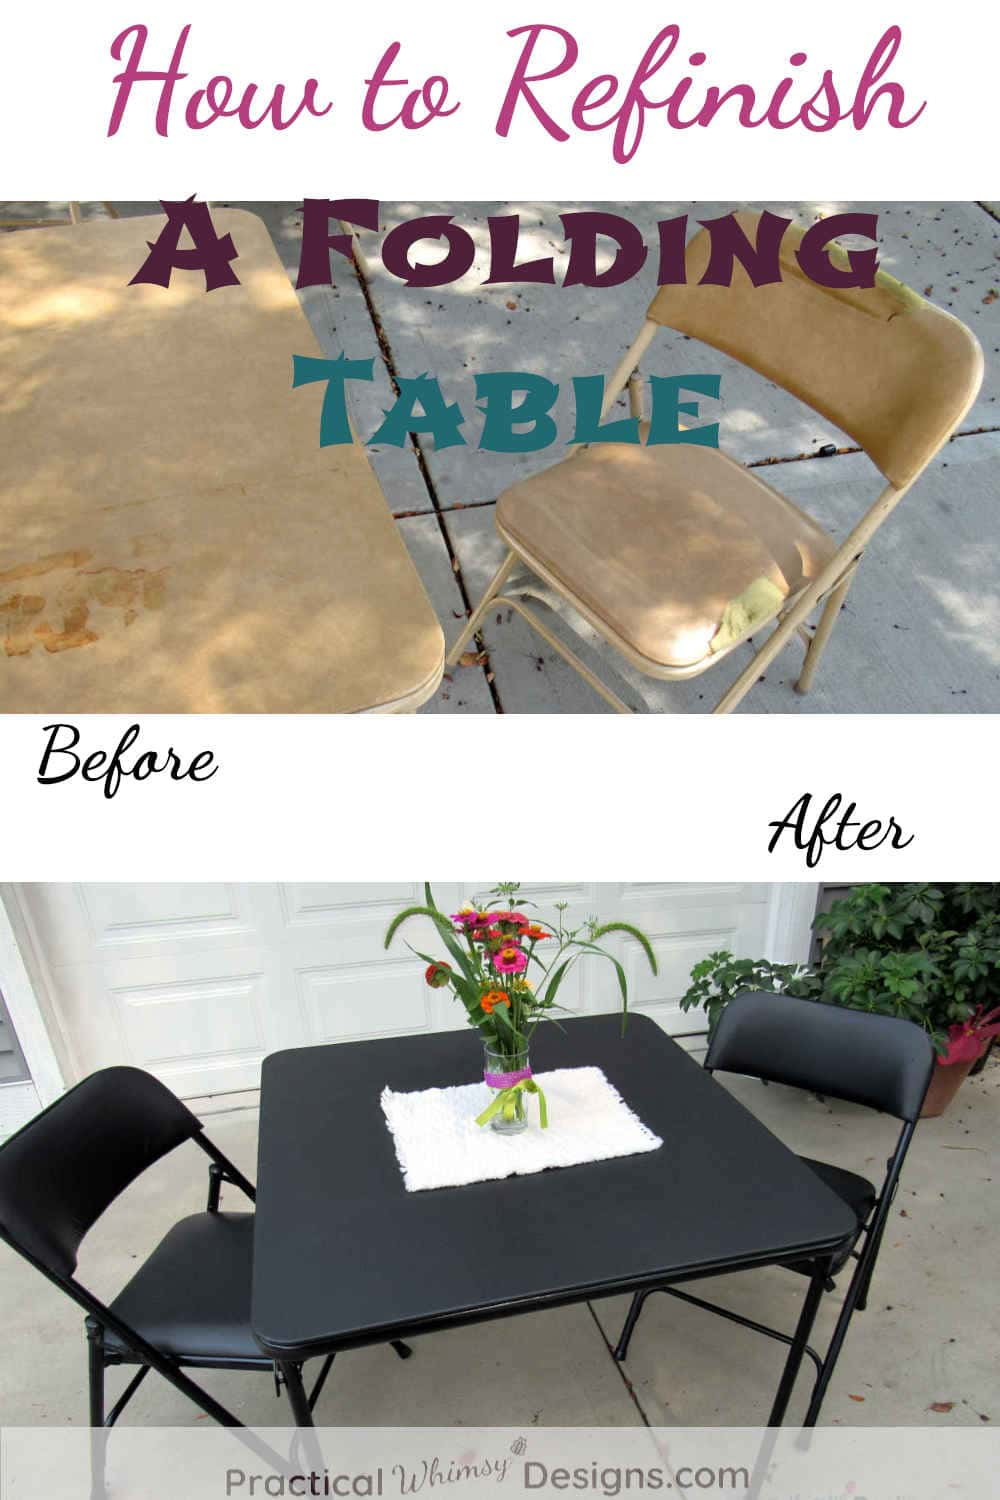 How To Refinish A Folding Table Practical Whimsy Designs